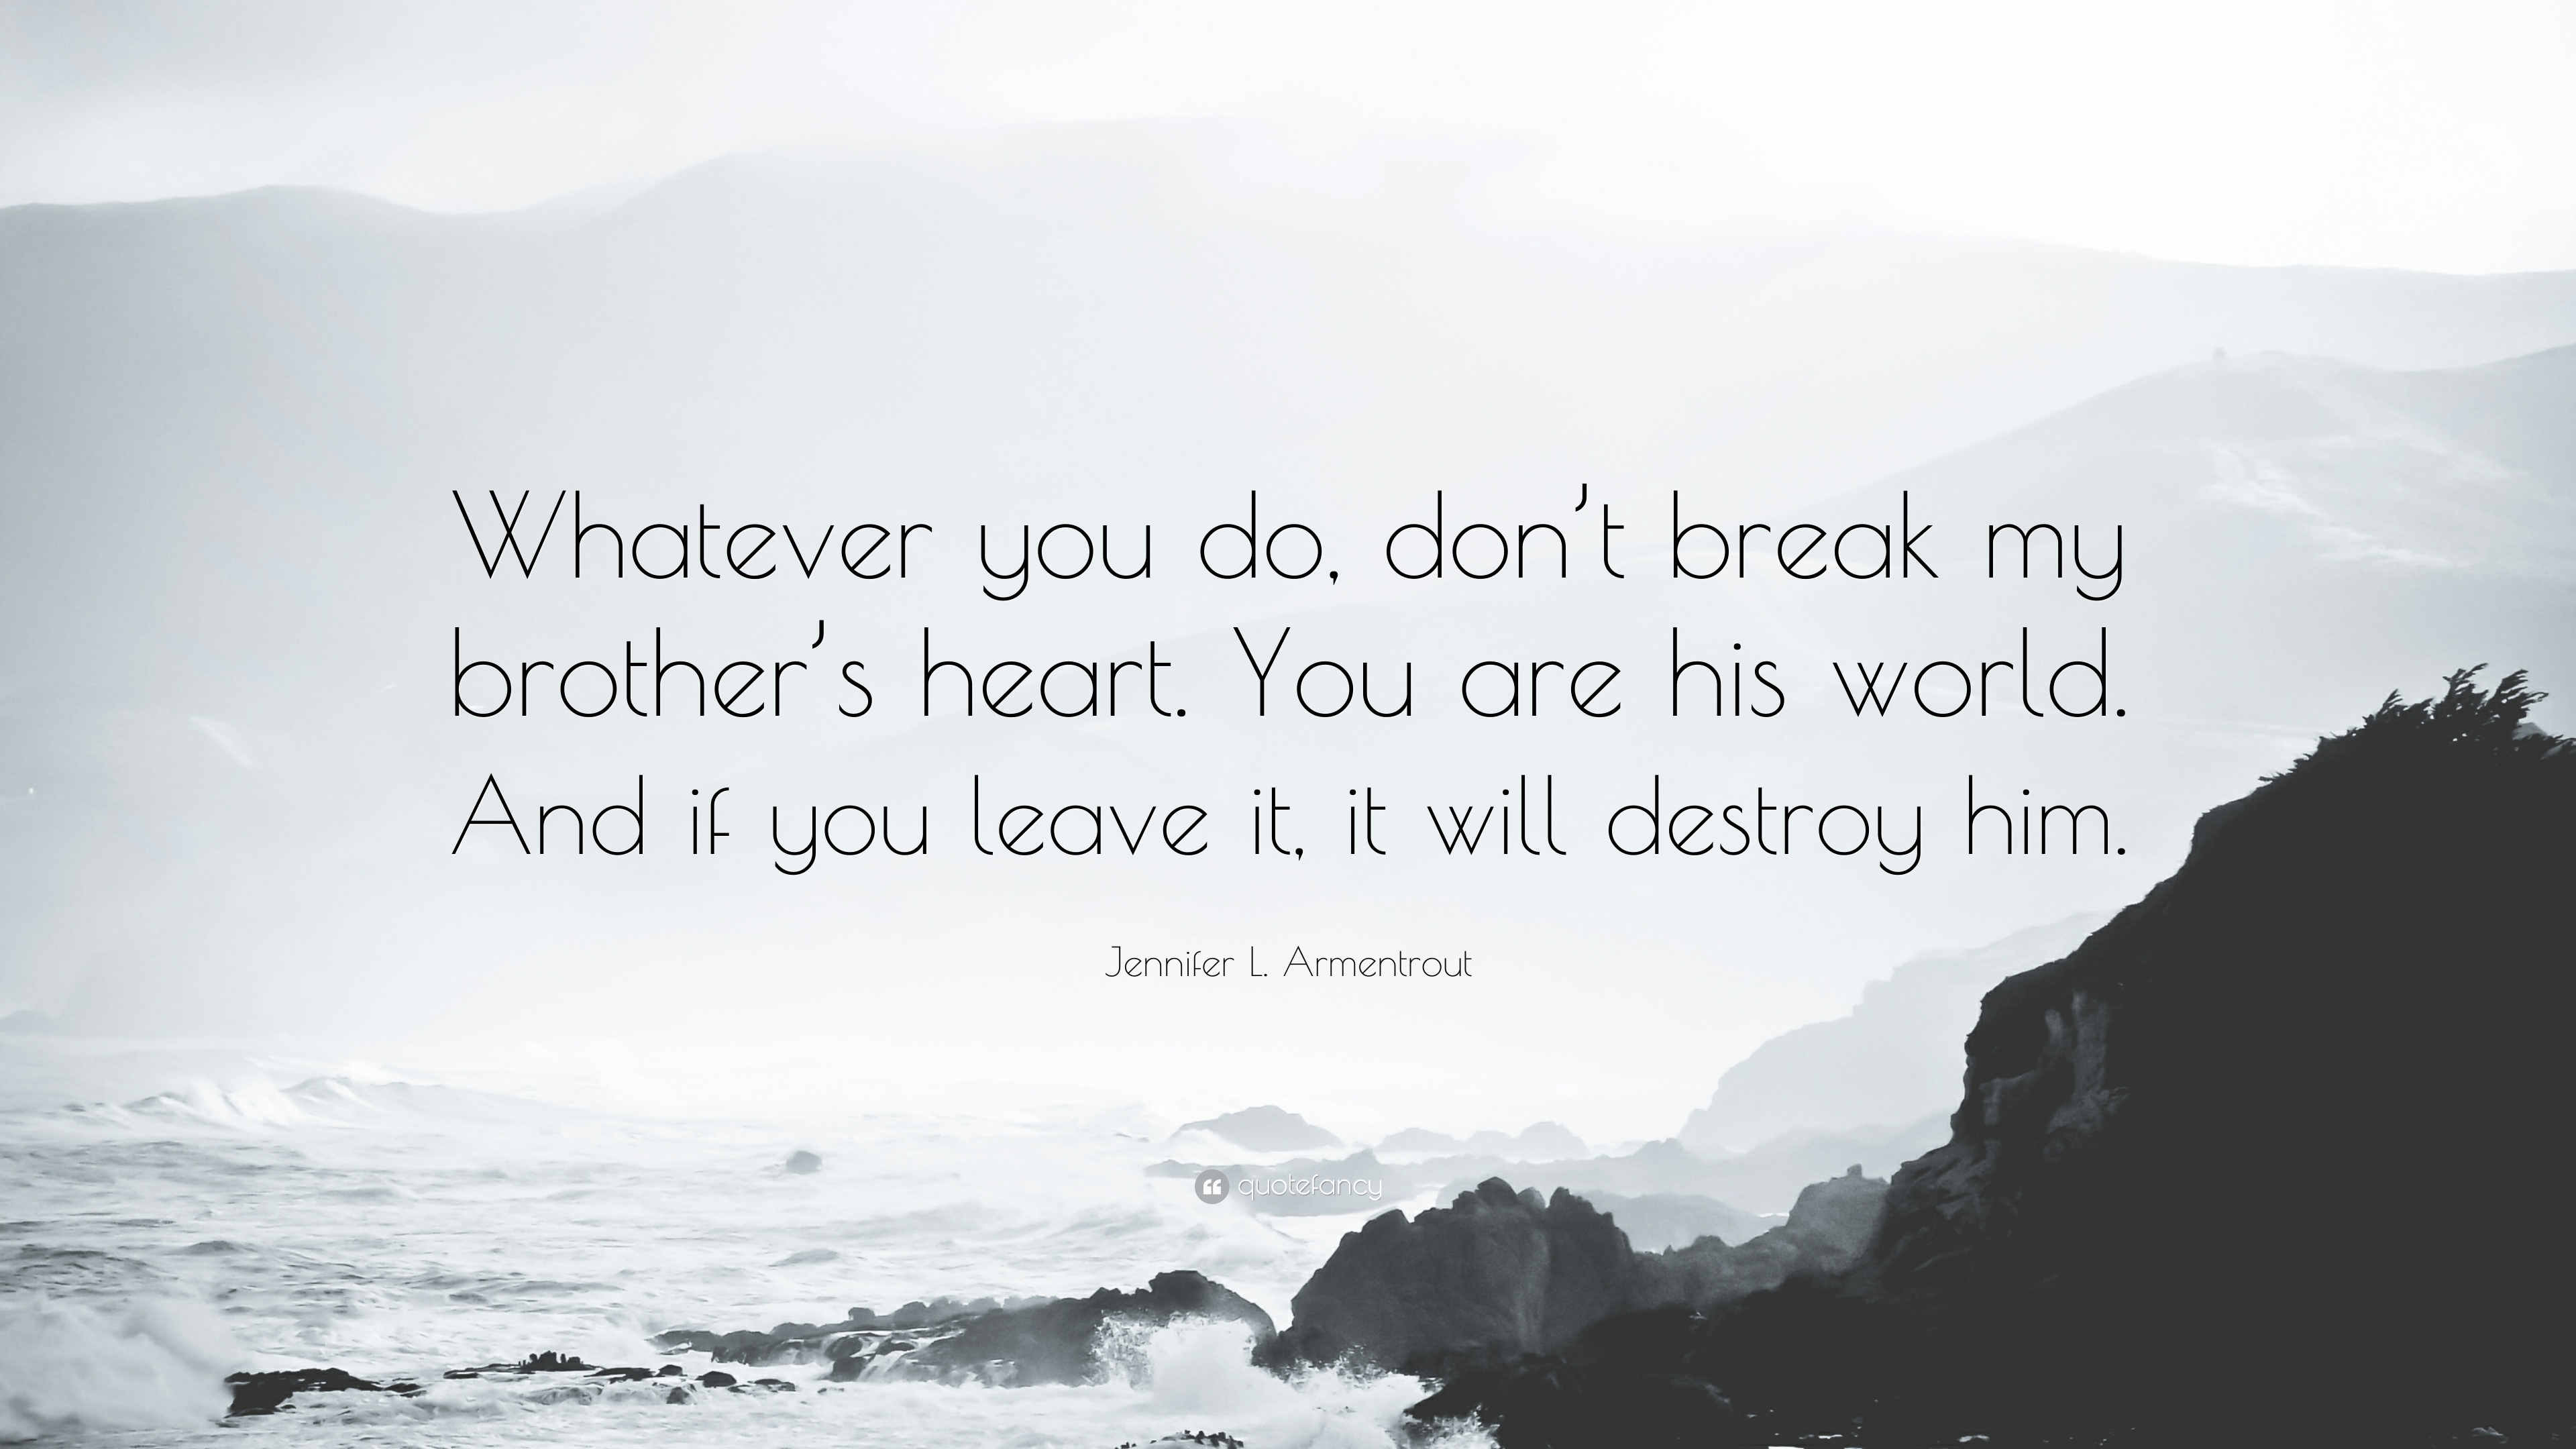 Jennifer L Armentrout Quote Whatever You Do Dont Break My